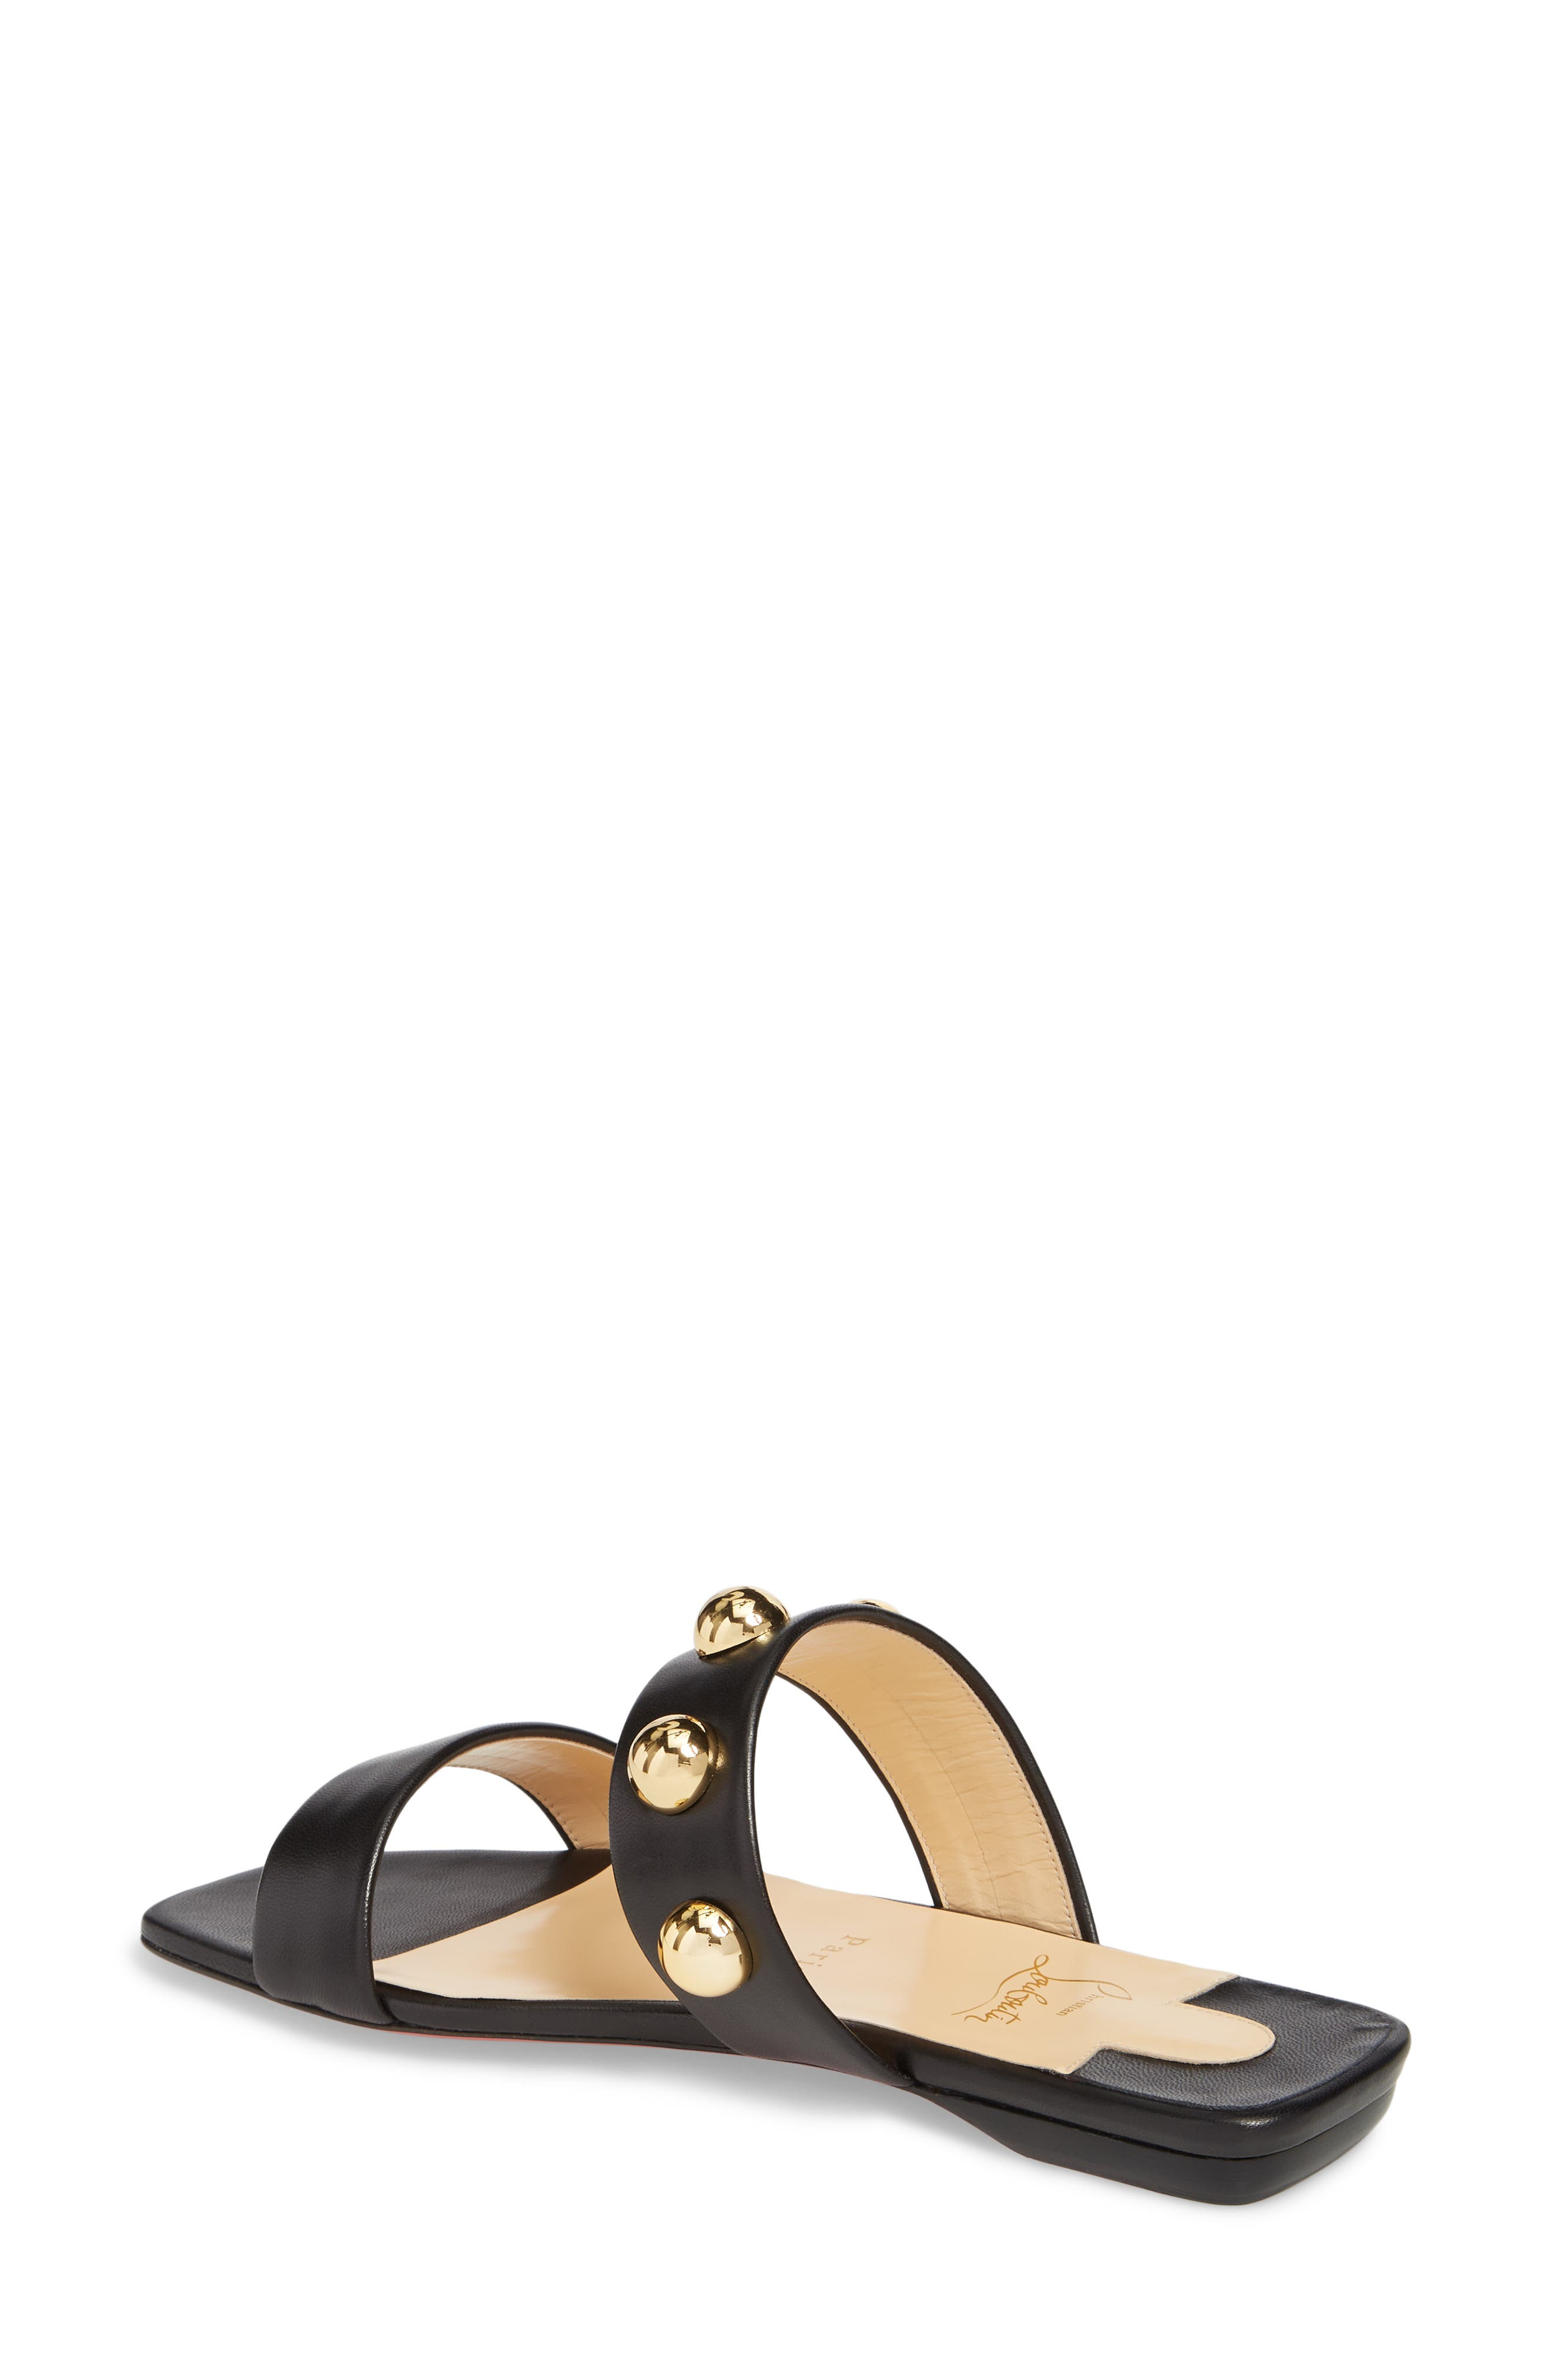 Simple Bille Ornament Slide Sandal,                             Alternate thumbnail 2, color,                             BLACK/ GOLD